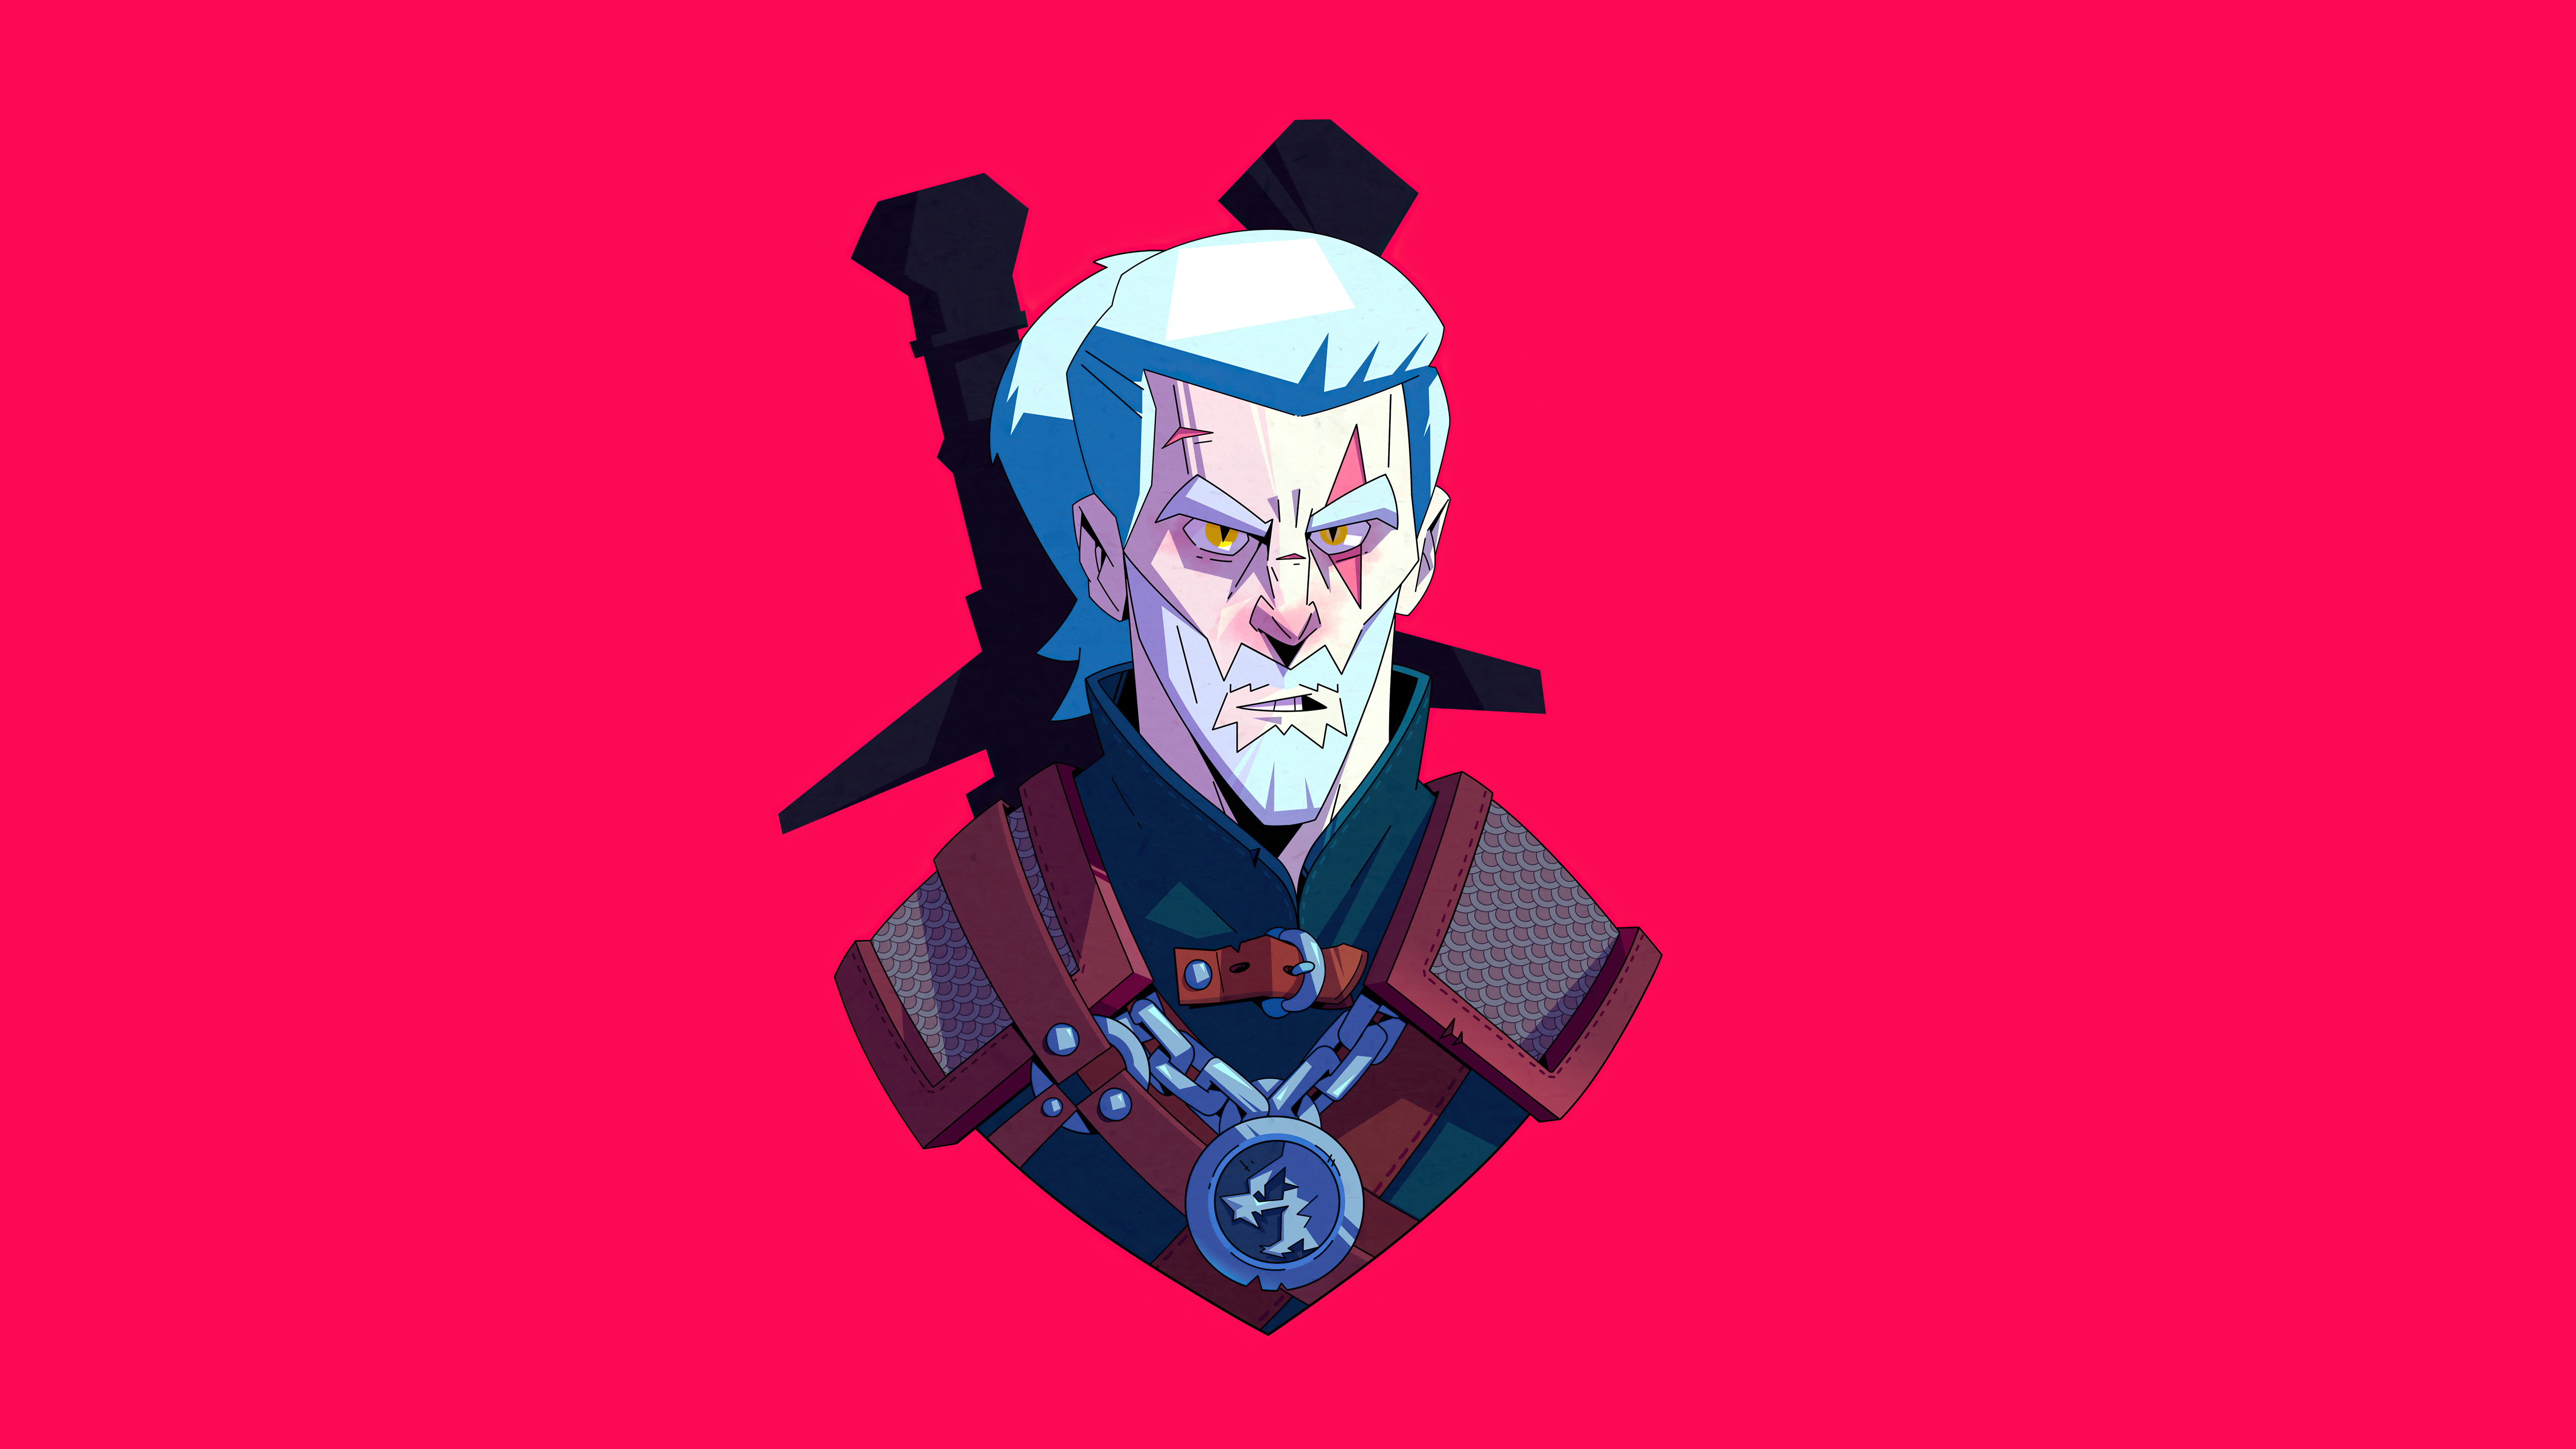 geralt of rivia from the witcher series minimal 4k 1626910842 - Geralt Of Rivia From The Witcher Series Minimal 4k - Geralt Of Rivia From The Witcher Series Minimal 4k wallpapers